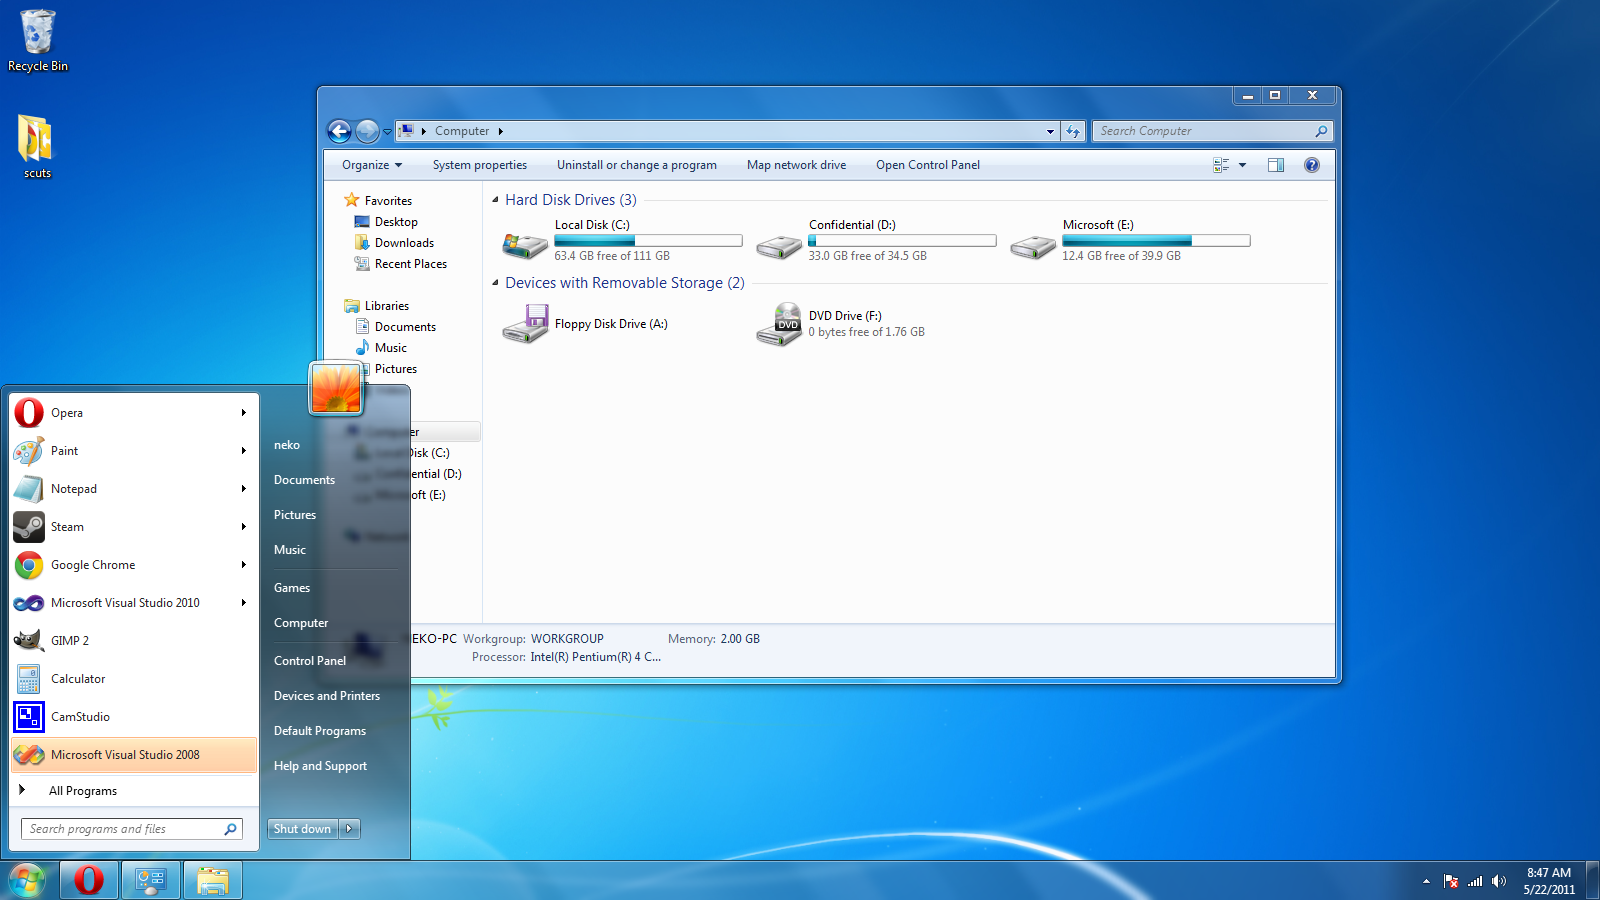 File:Win7 Aero.png.